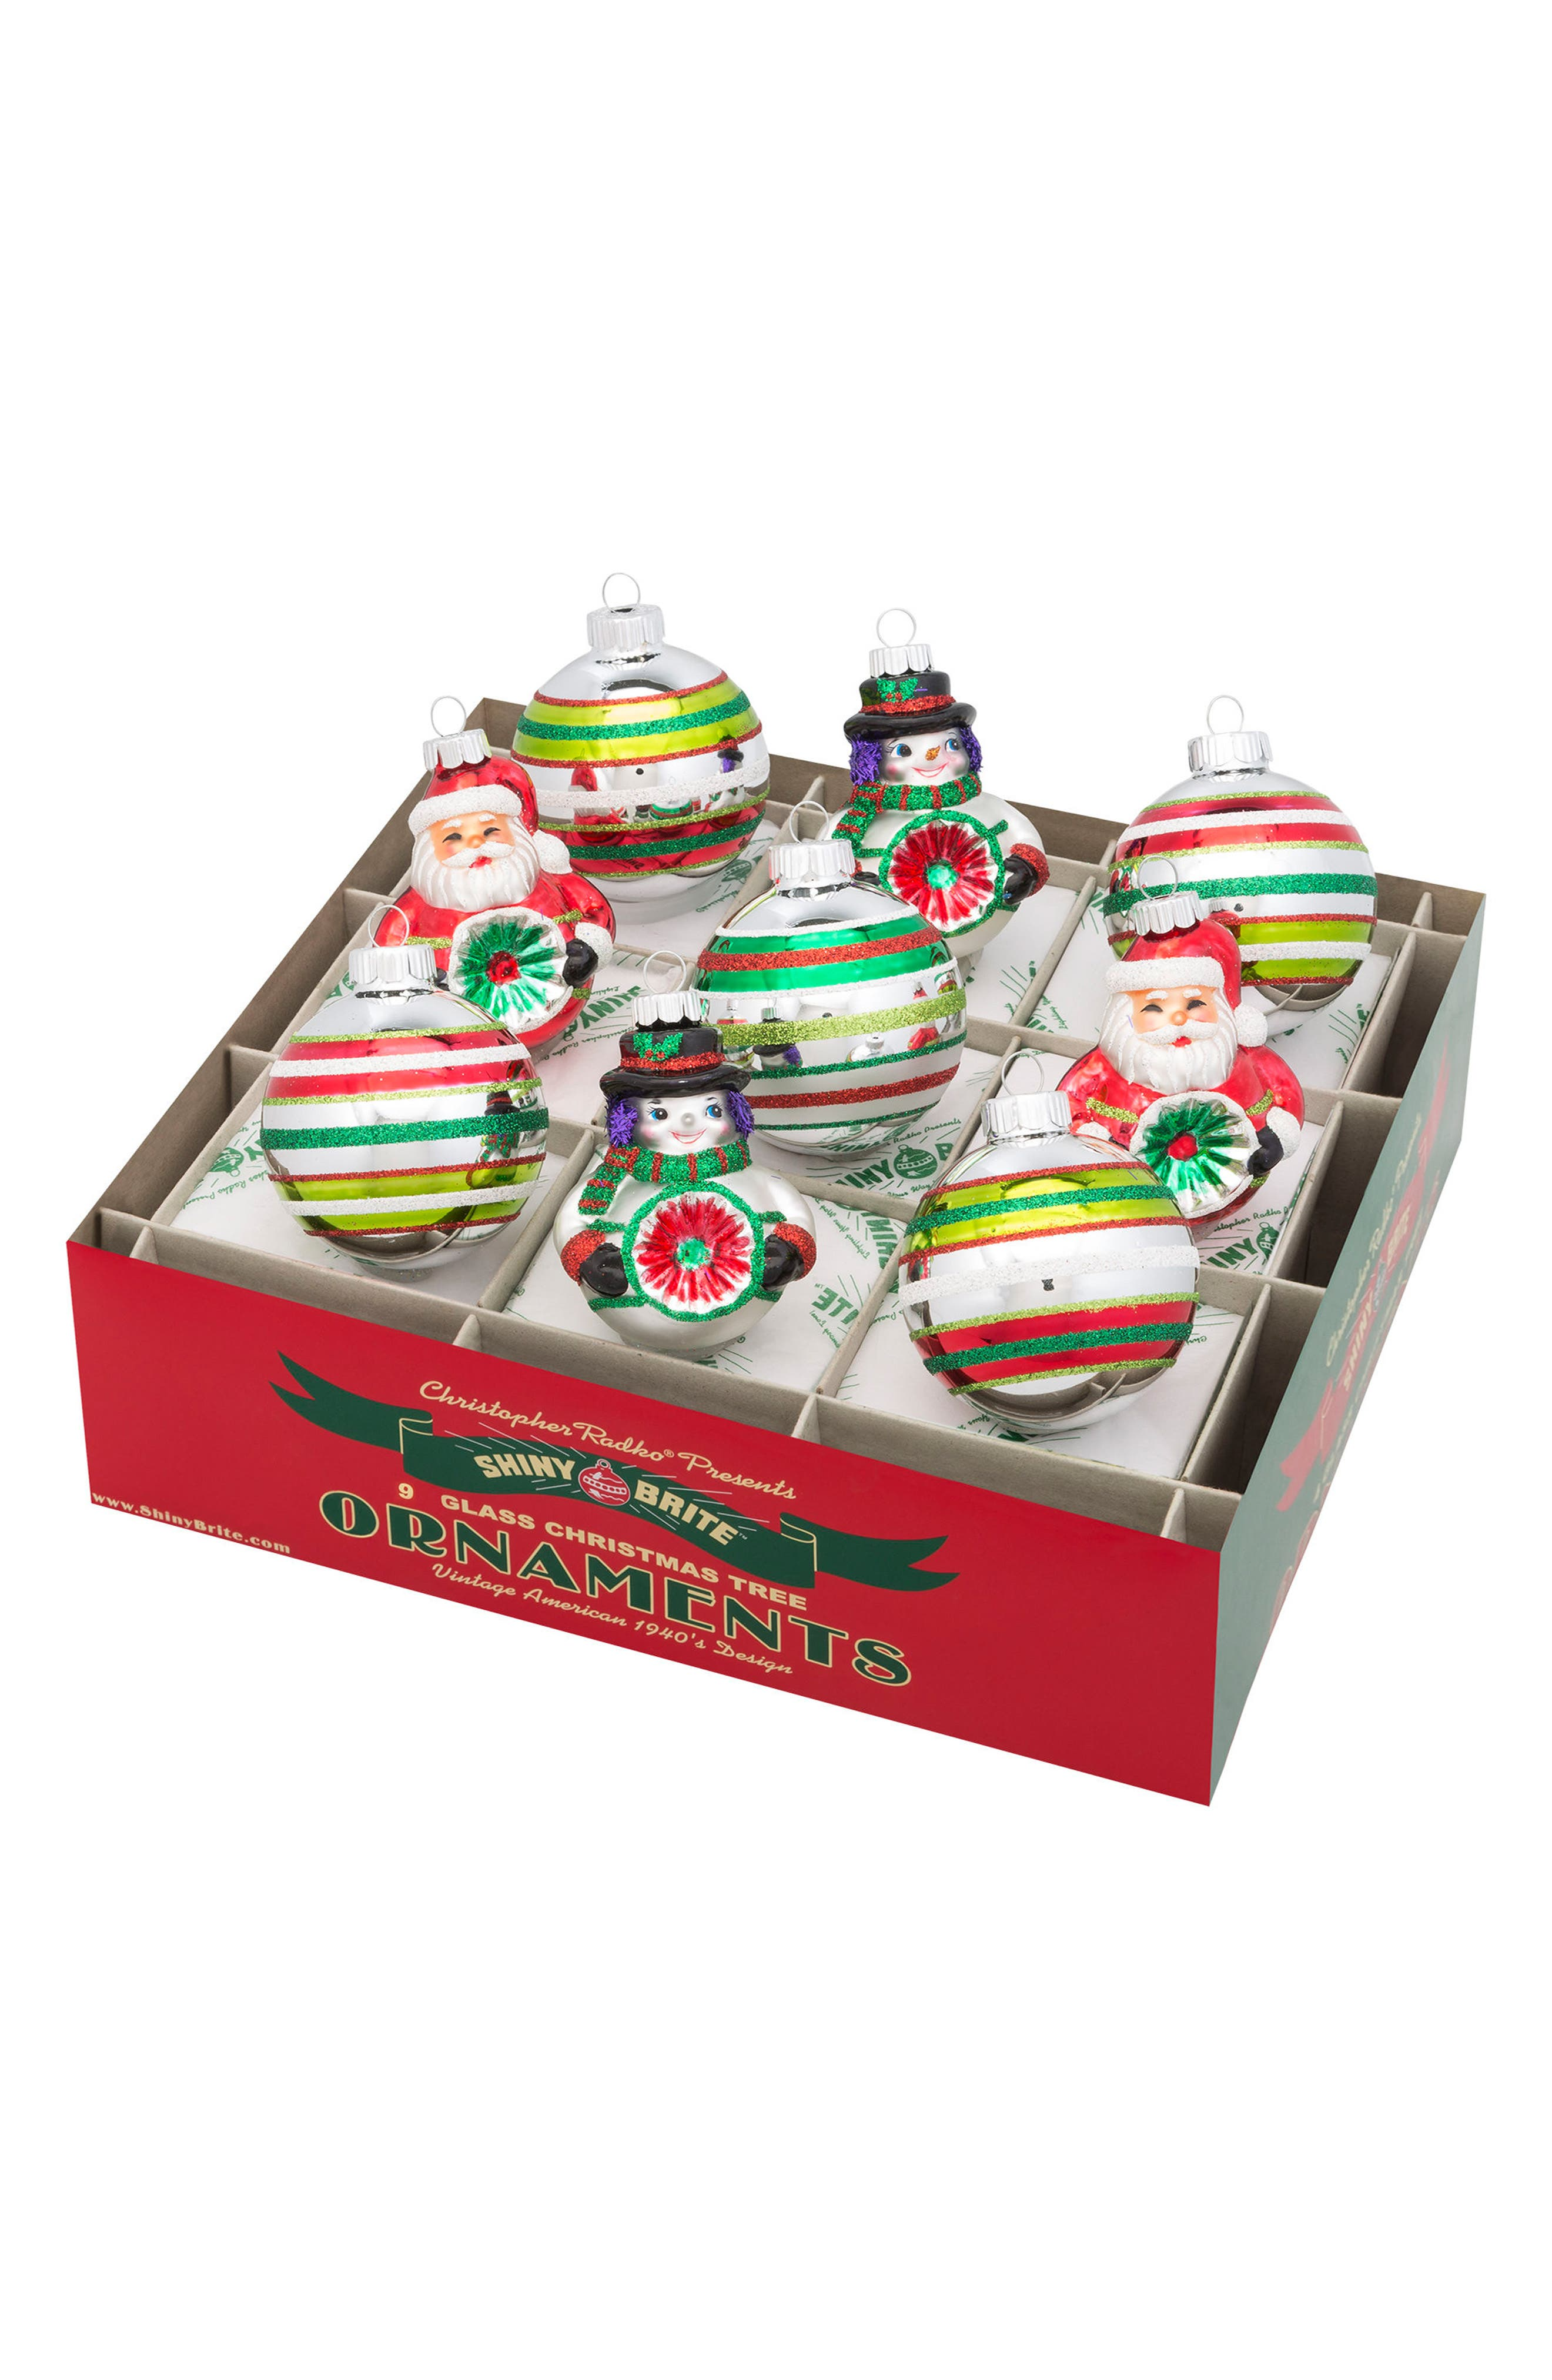 Christopher Radko Holiday Splendor Set of 9 Glass Ornaments